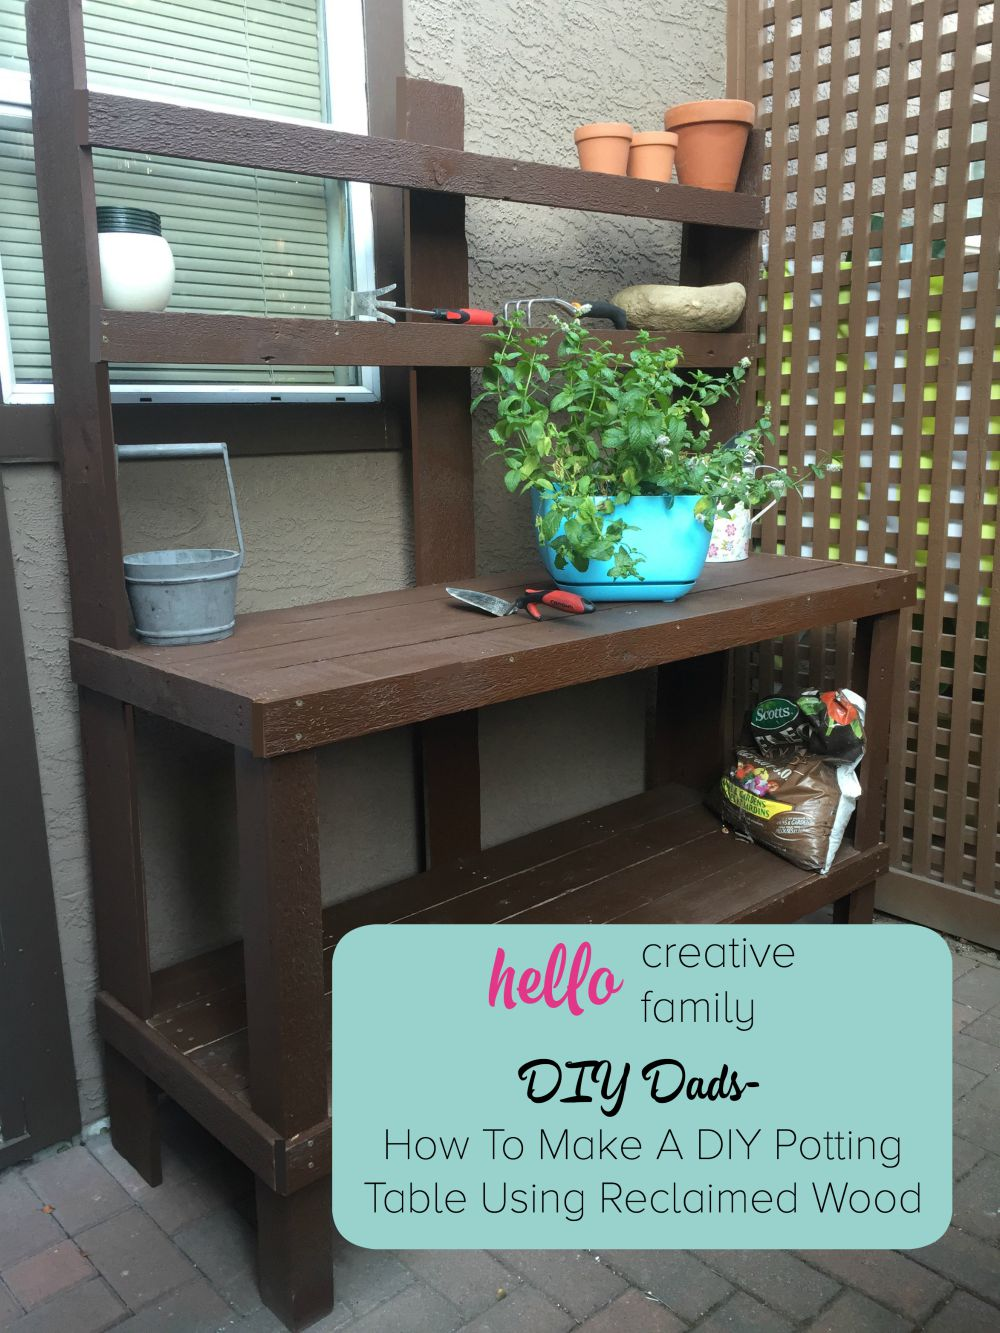 DIY Dads- How To Make A DIY Potting Table Using Reclaimed Wood A Great Weekend Project for a Handmade Gift Mom Will Love